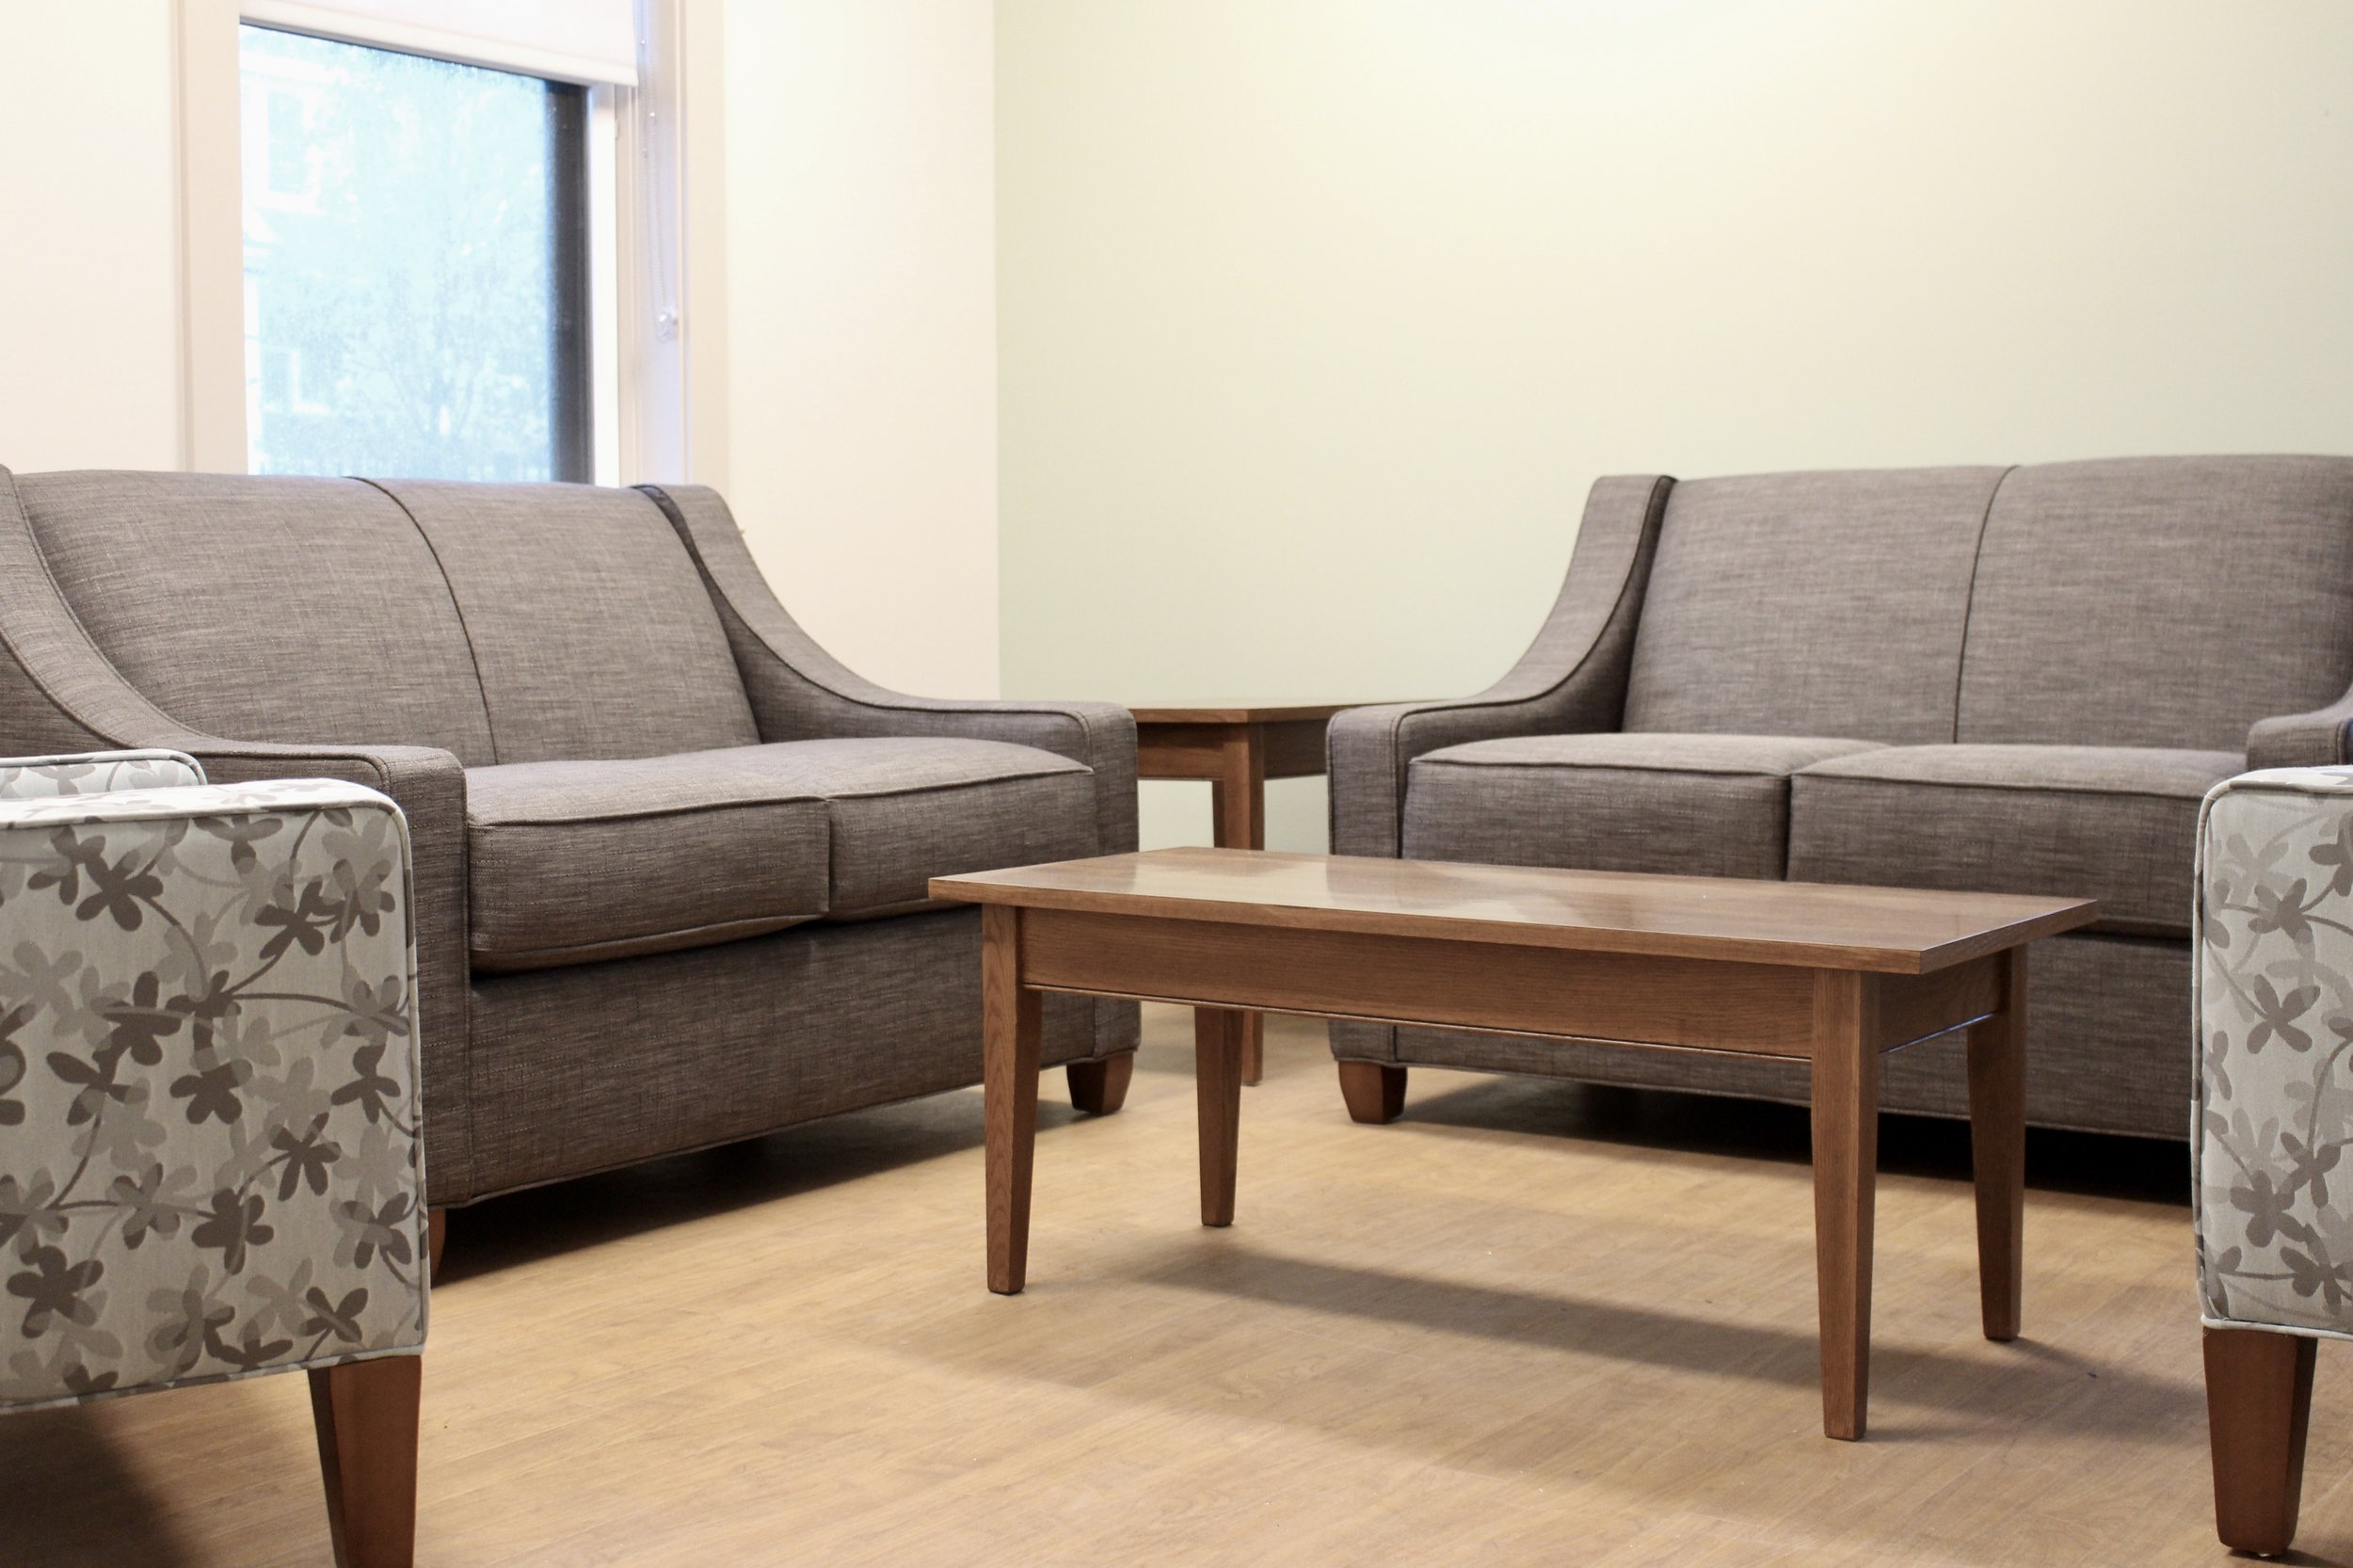 Carnegie Upholstery with Shaker Wood Tables